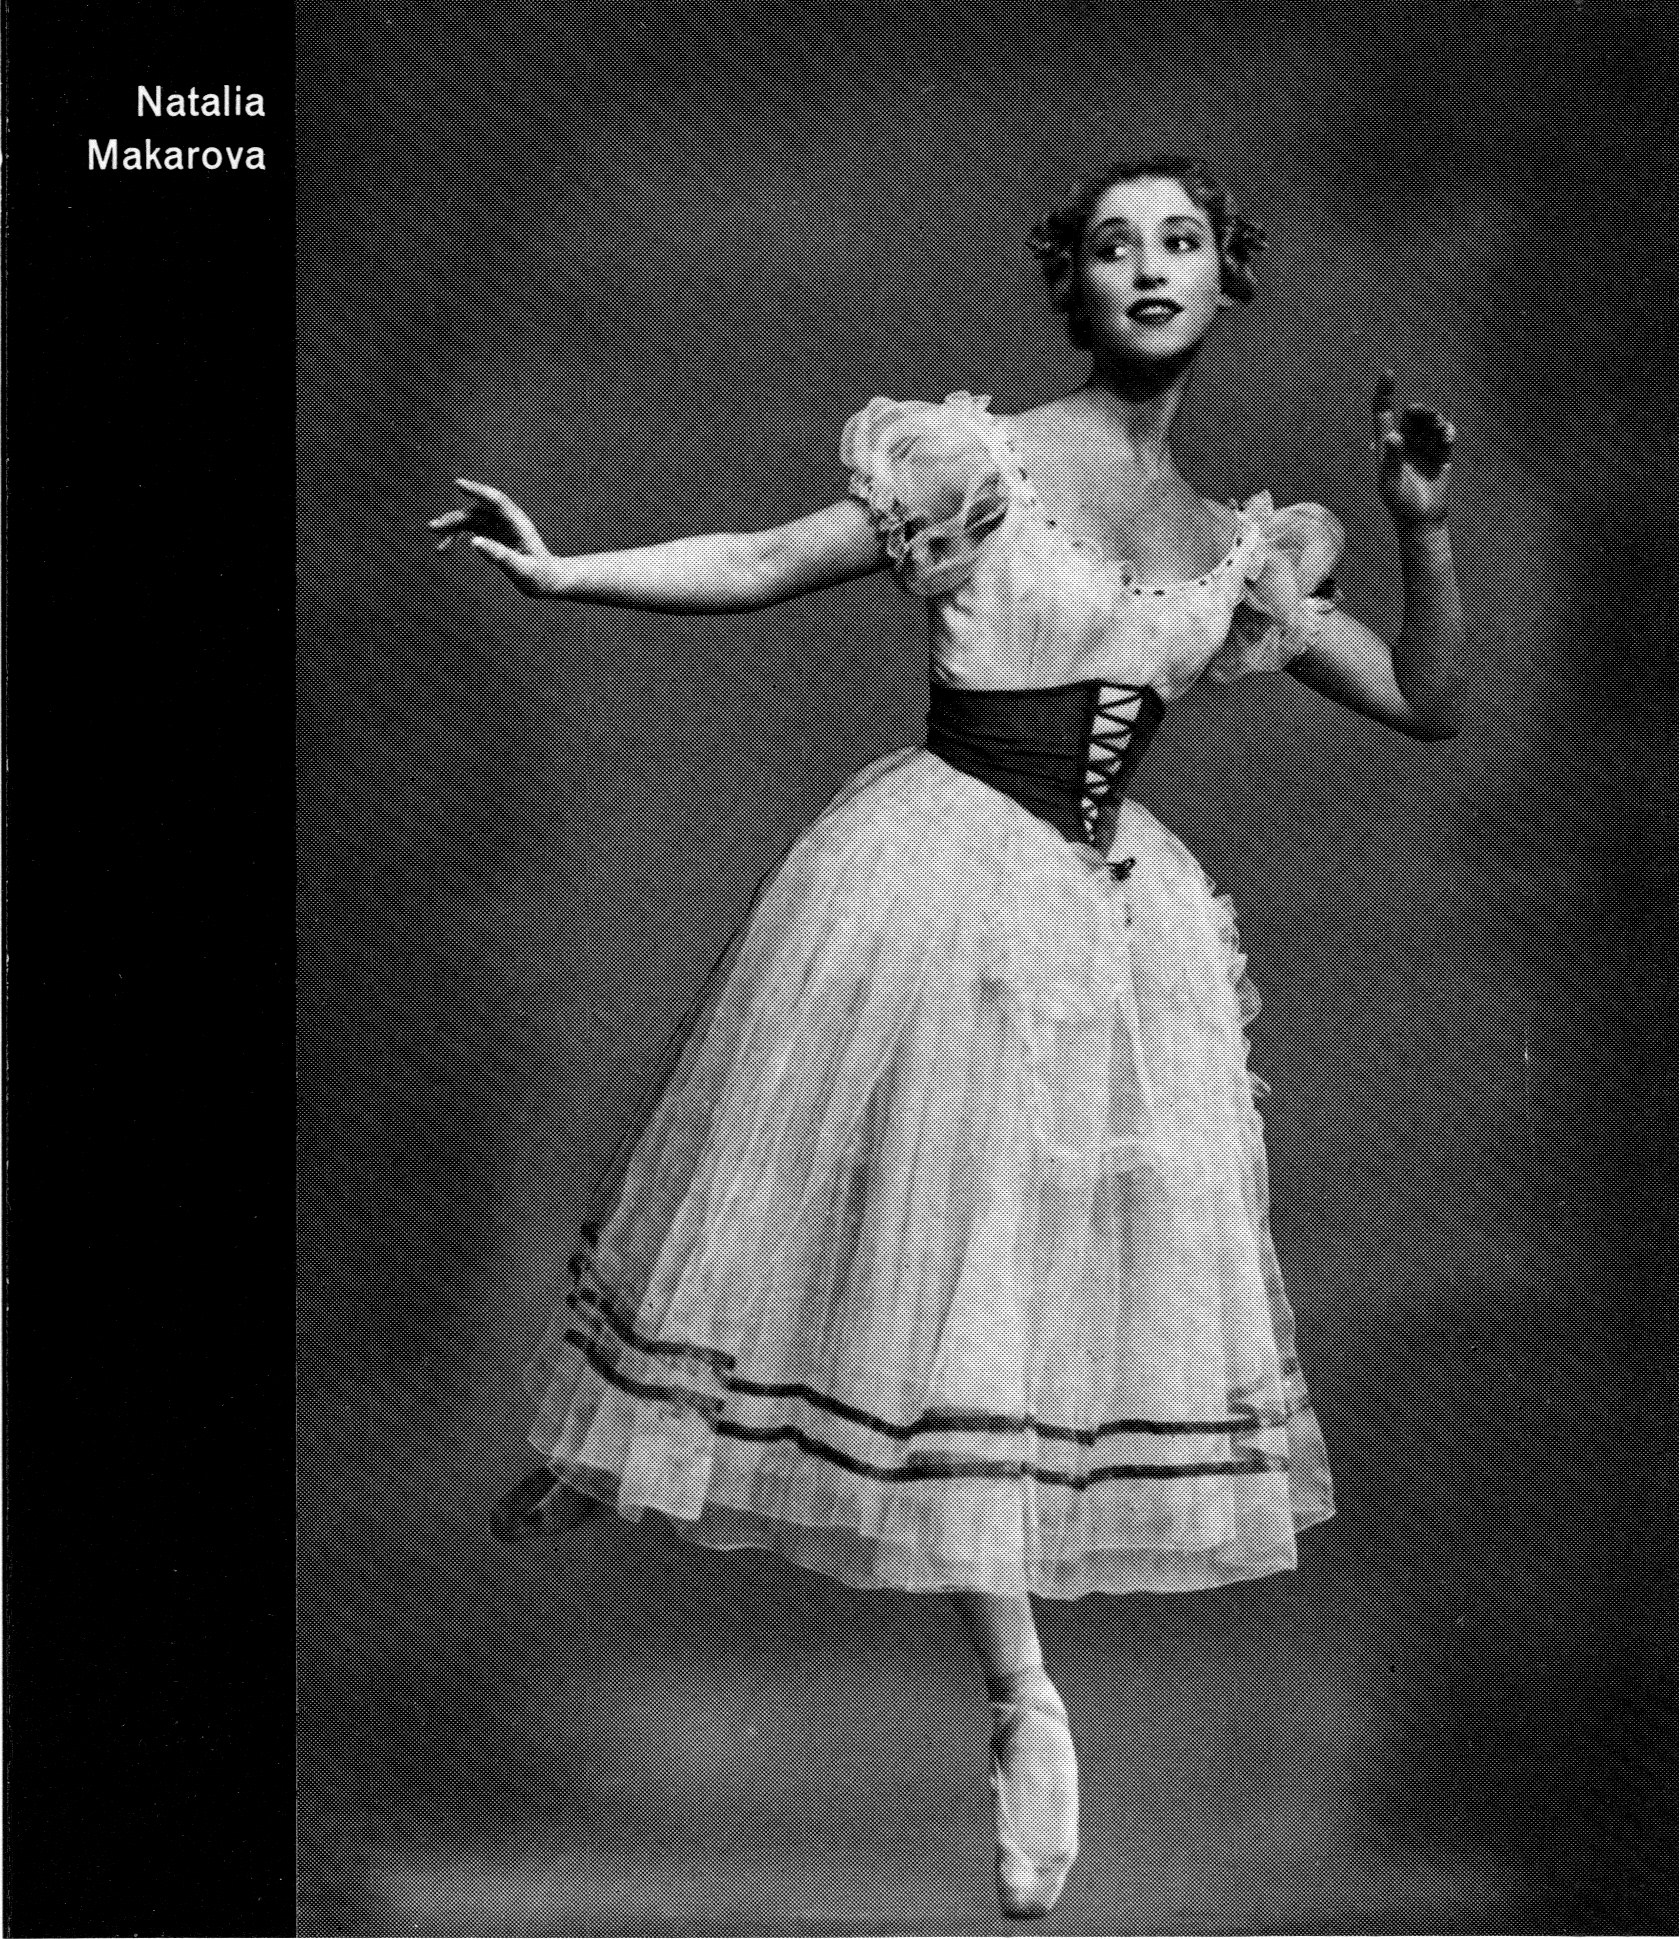 Honeymoon - Amsterdam - Giselle, Natalia Makarova